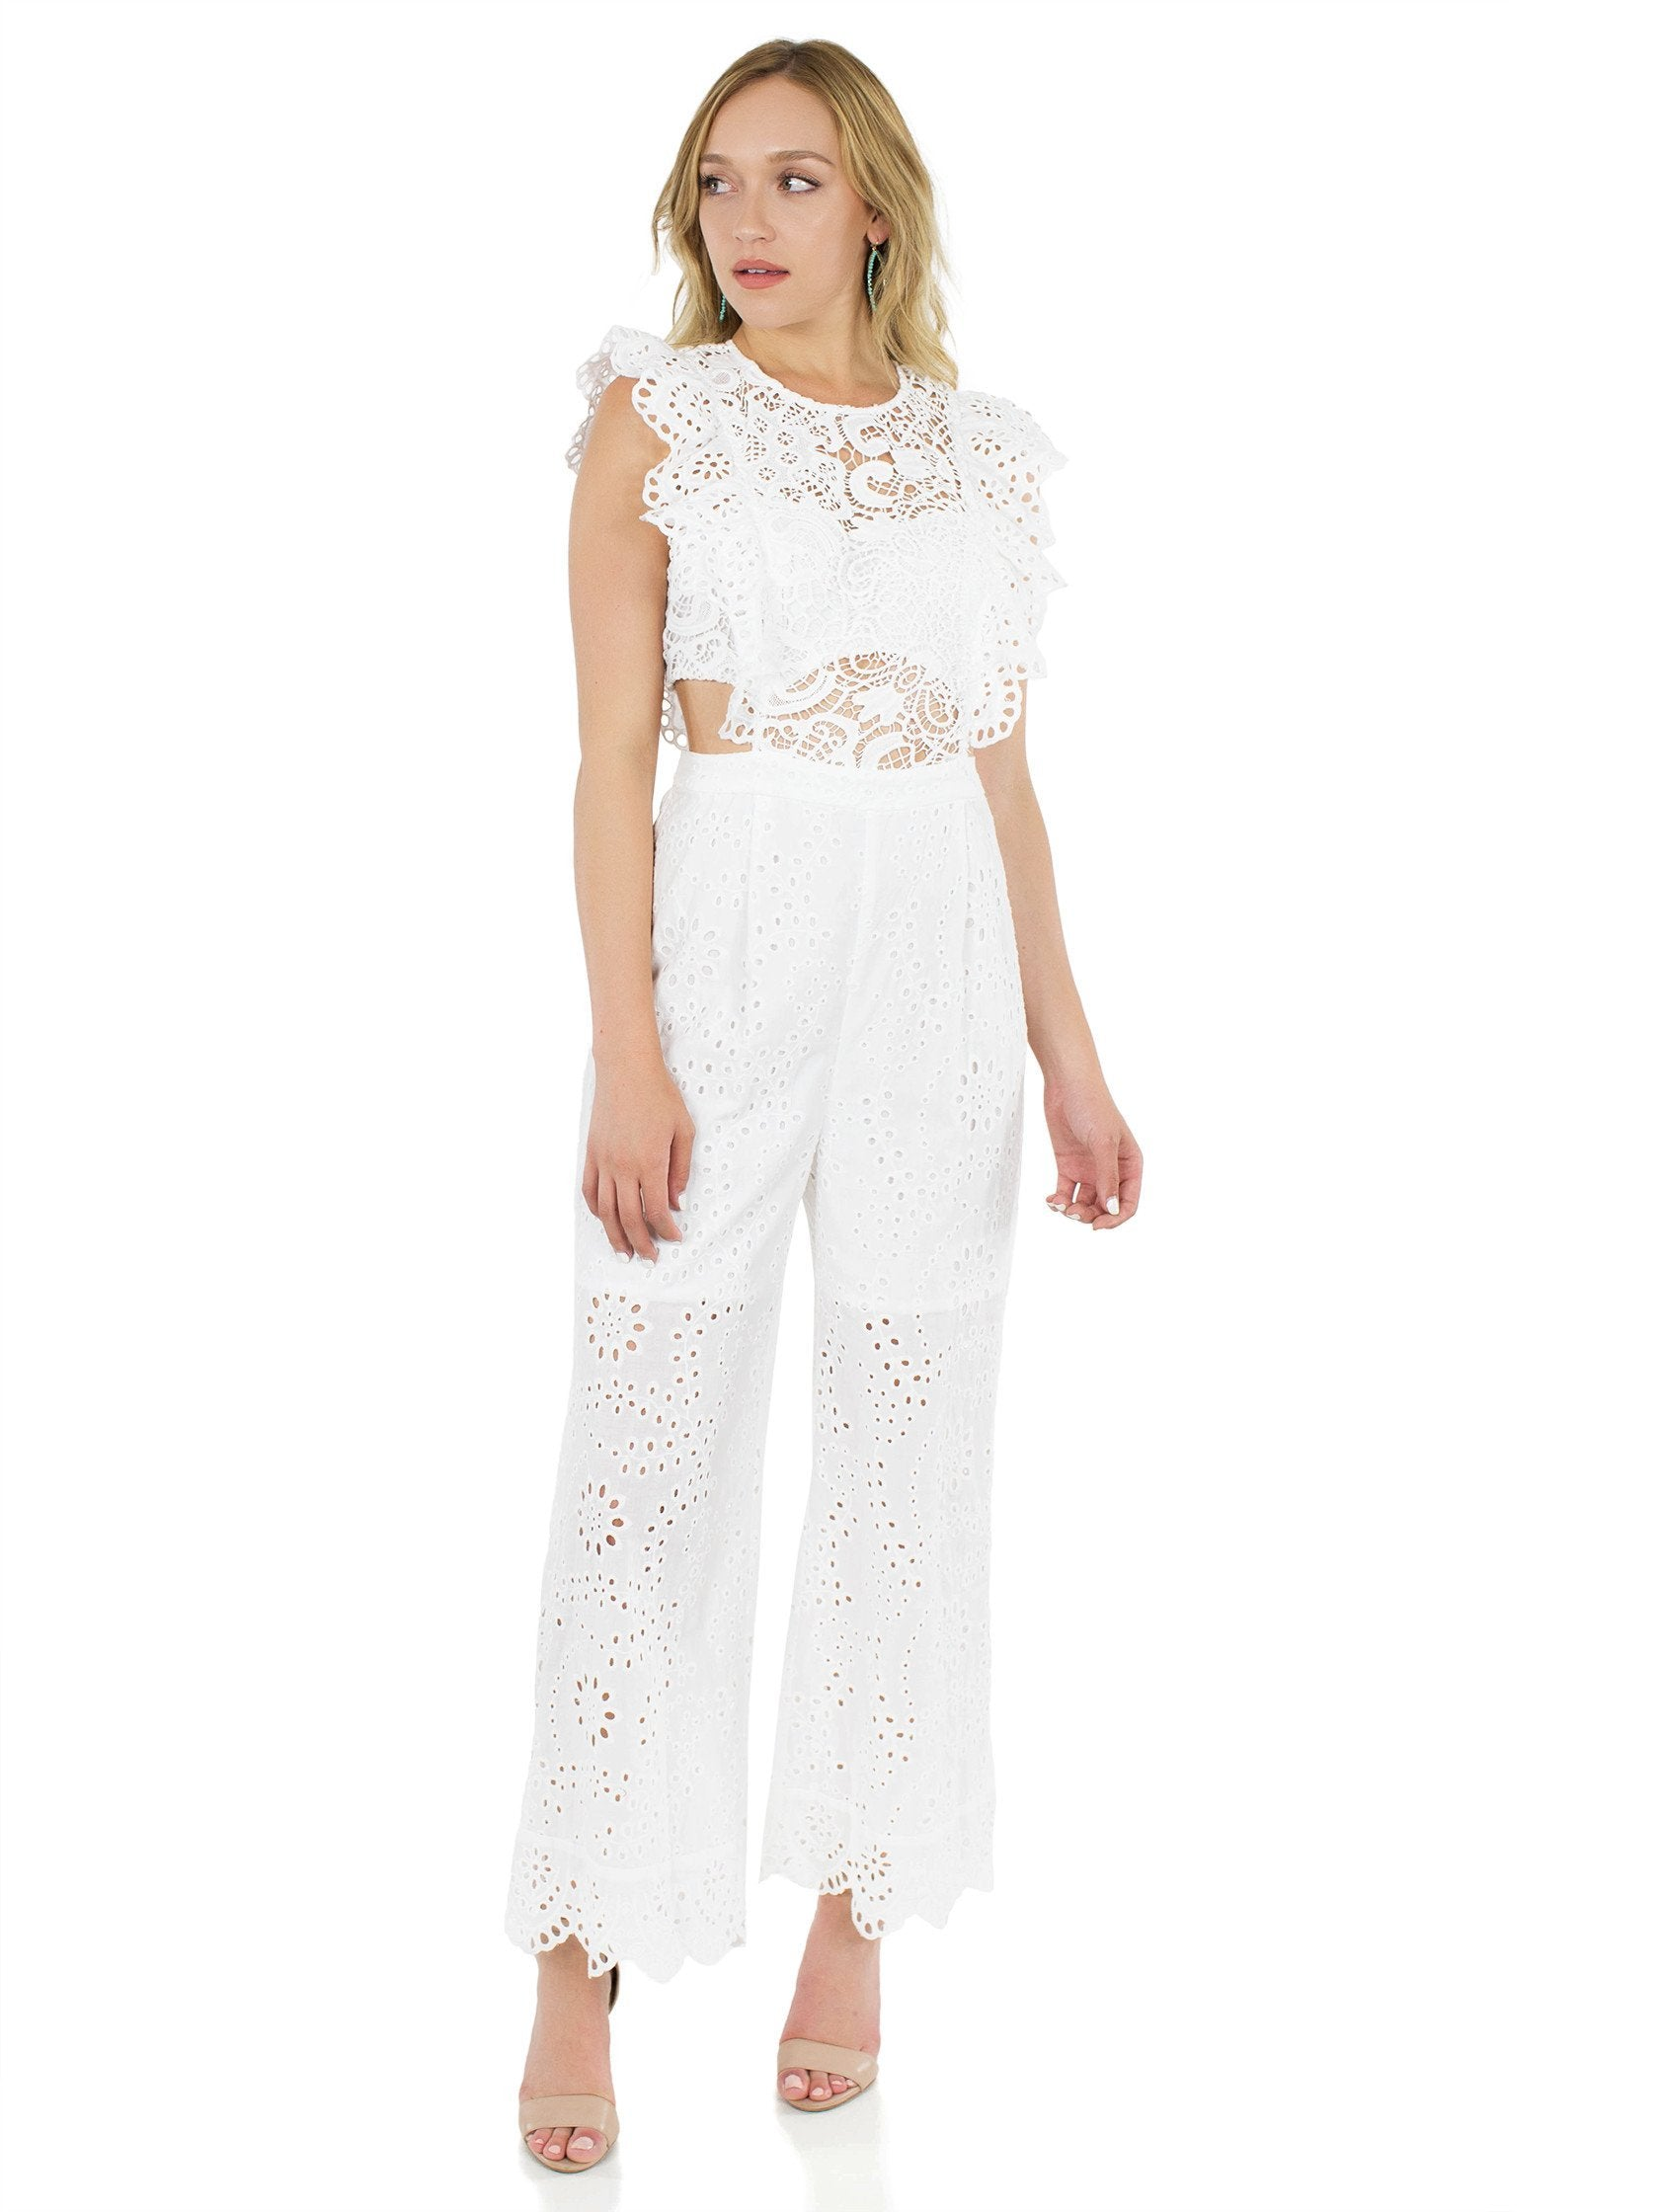 Women outfit in a jumpsuit rental from Nightcap Clothing called Nightcap Eyelet Apron Jumpsuit